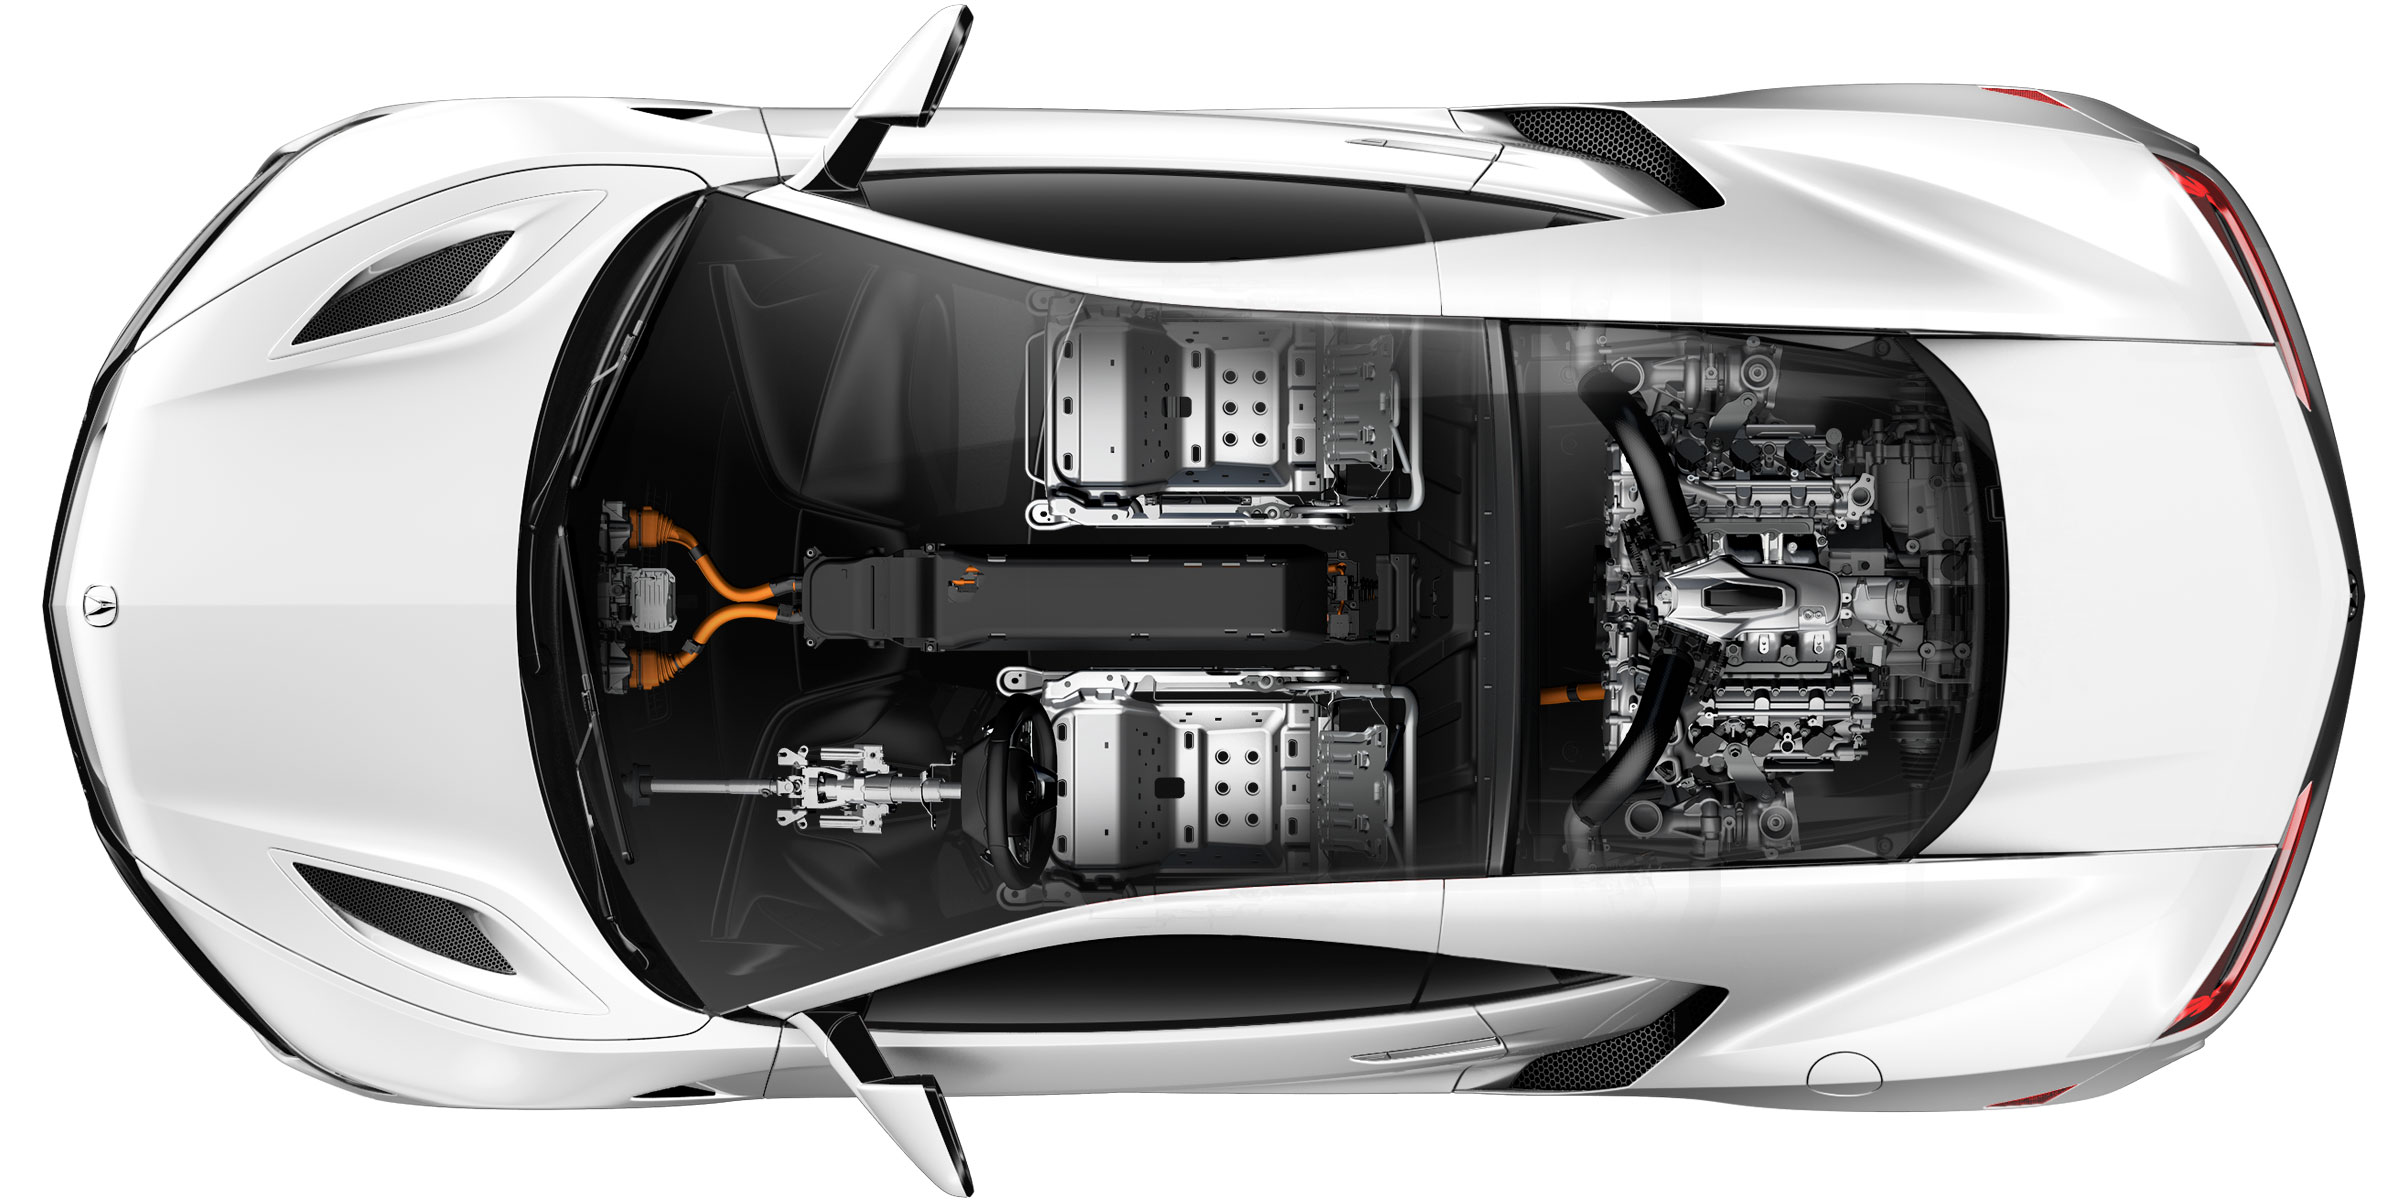 Performance Car Of The Year Acura NSX X Ray View Revealing Internal Systems.